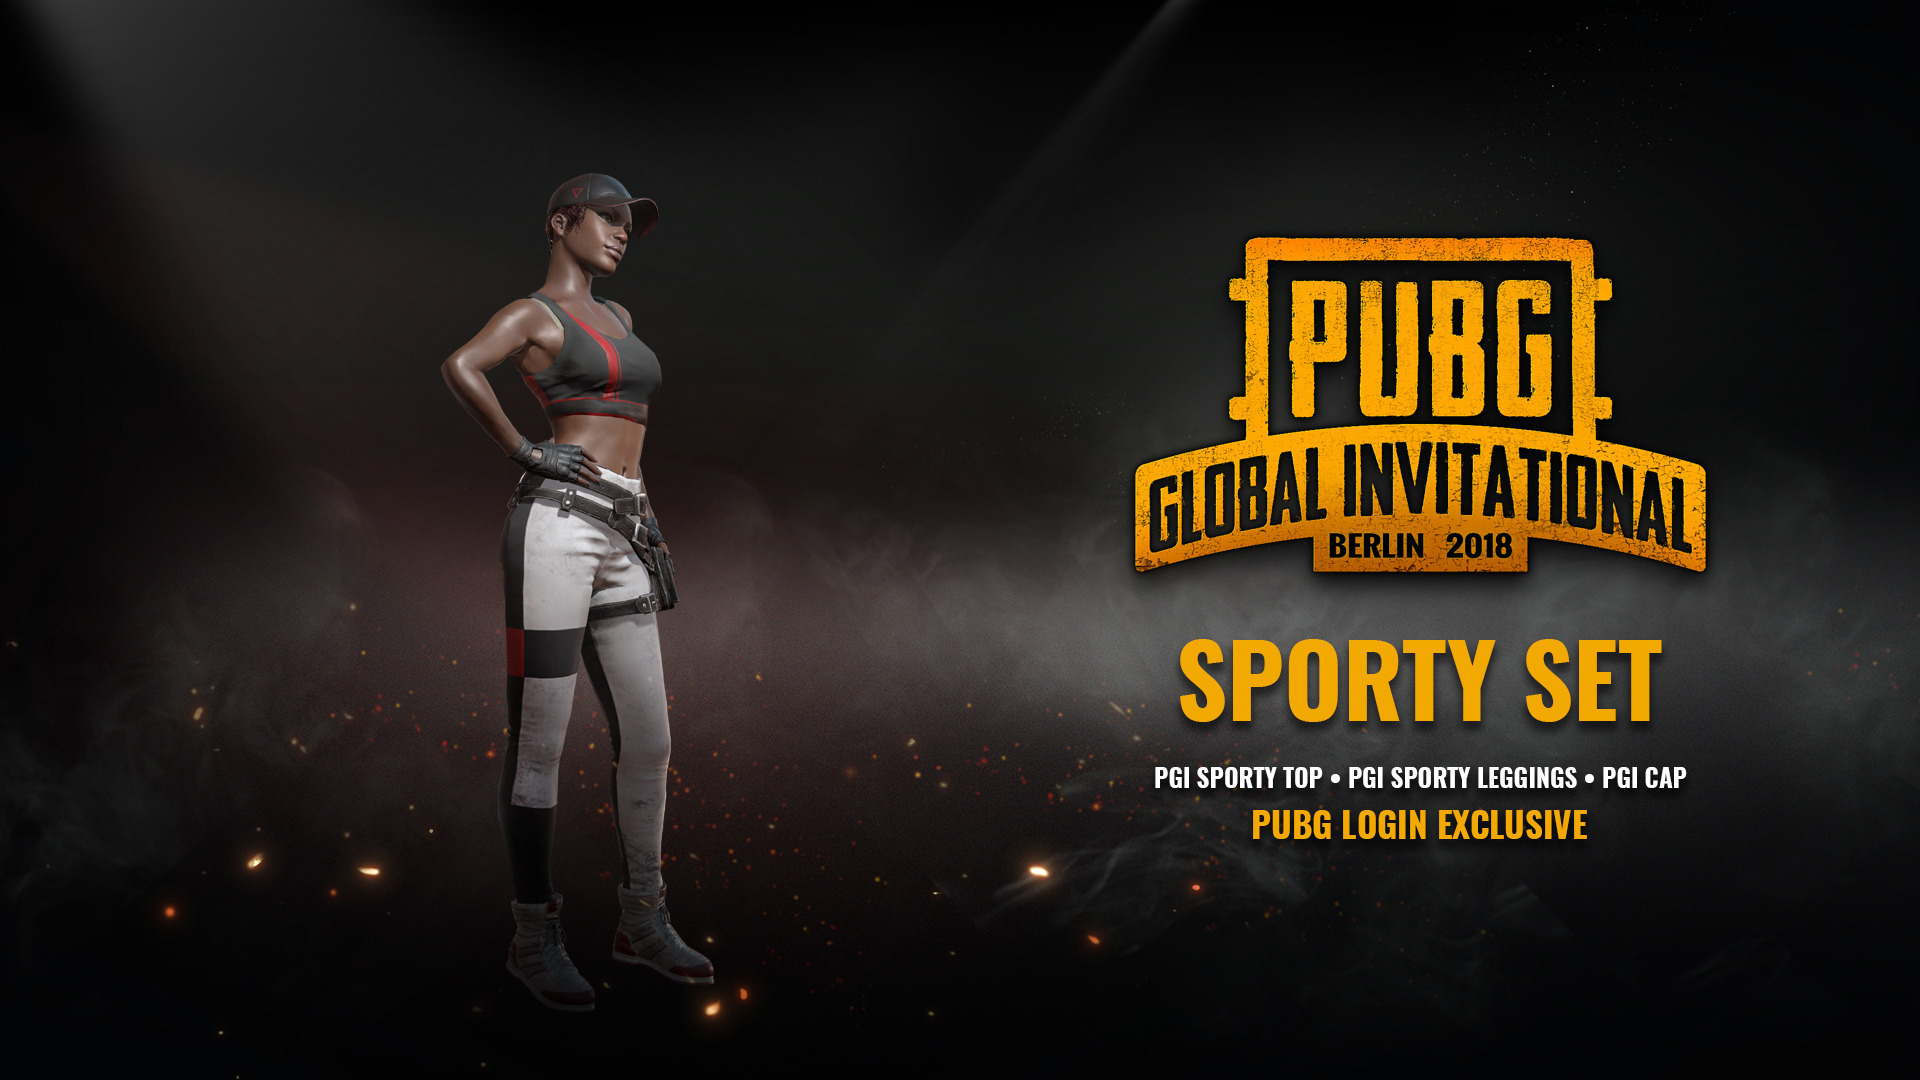 Get the Sporty Set Crate when You Log in to PUBG During PGI